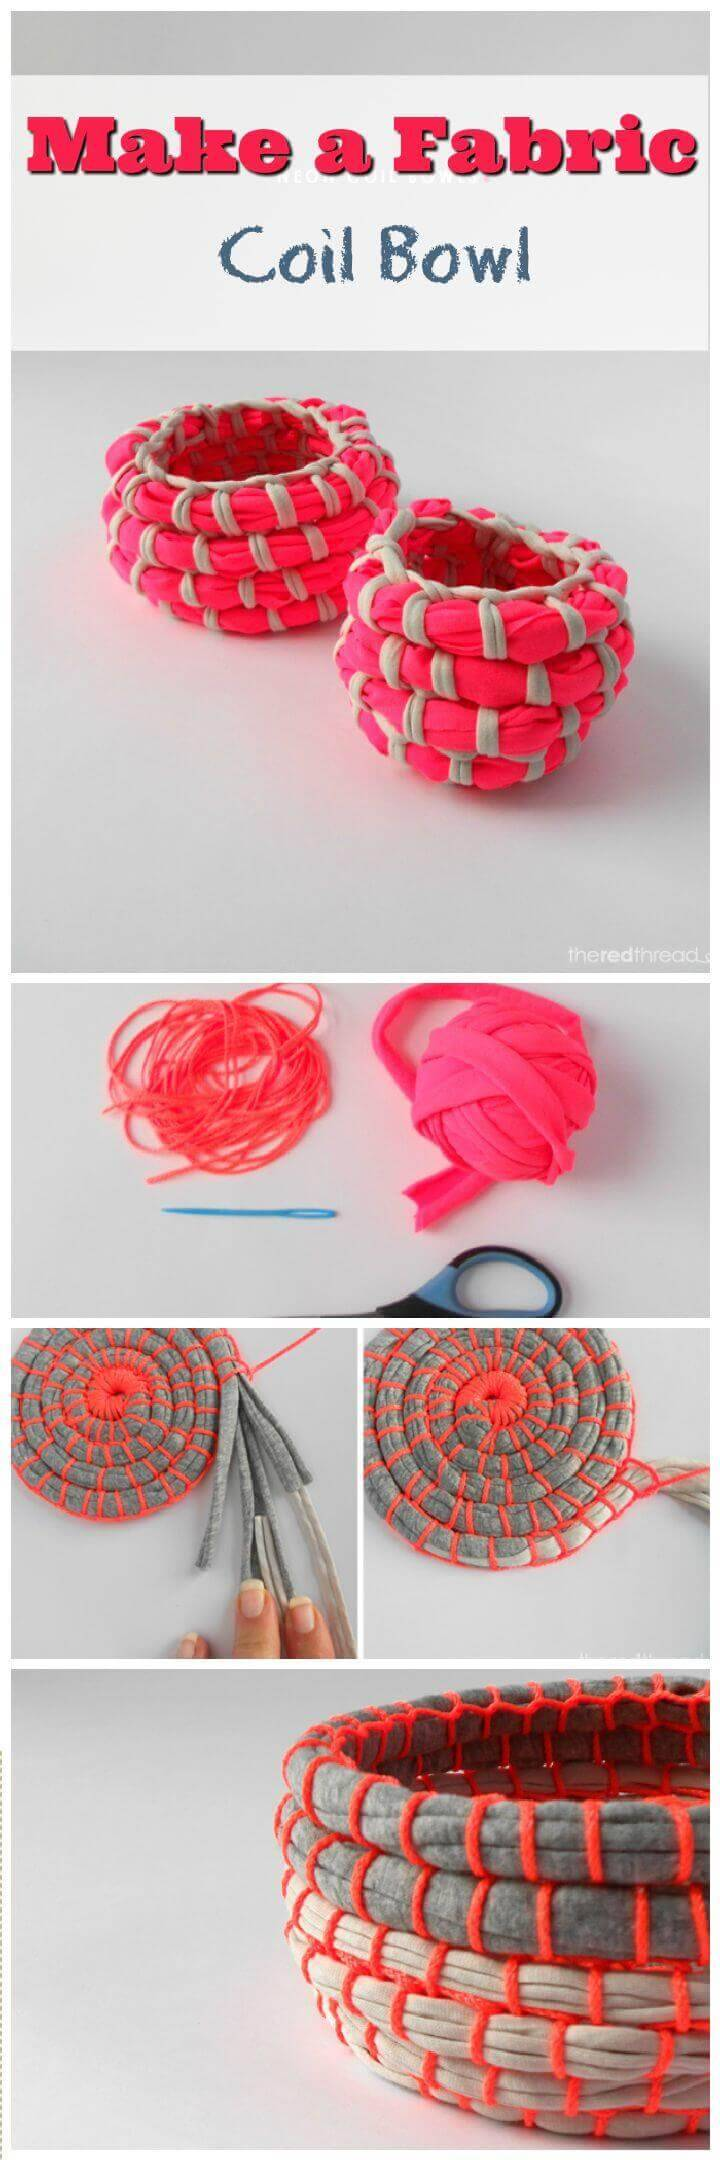 Make a Fabric Coil Bowl